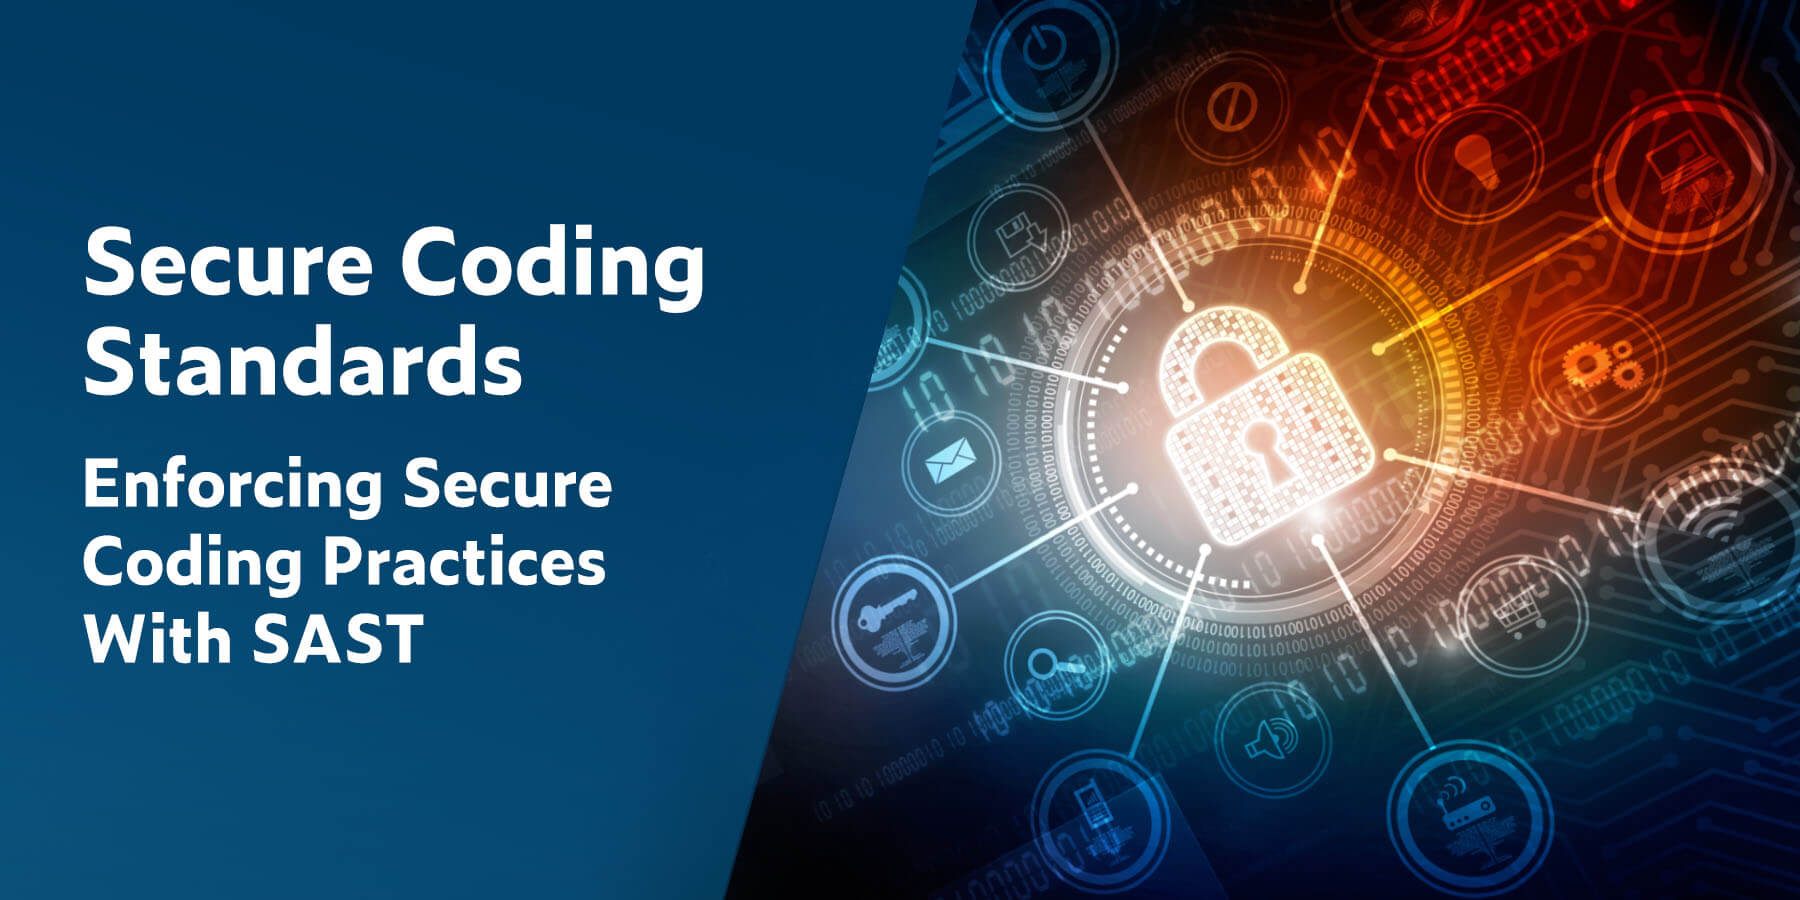 Secure Coding Standards: Enforcing Secure Coding Practices With SAST